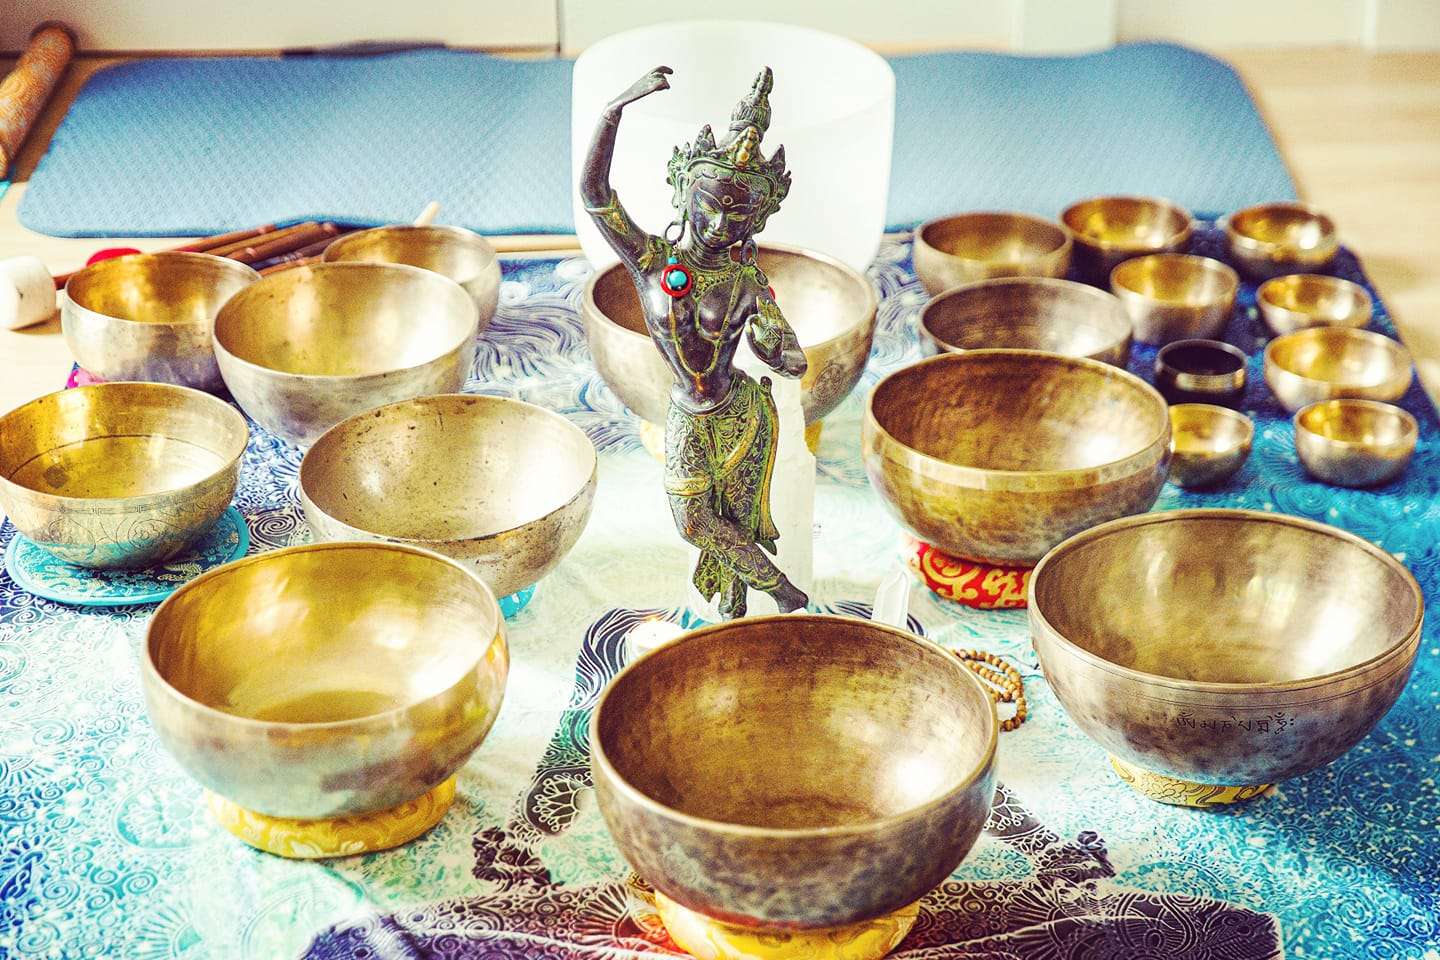 Foundations of Sound Healing with Himalayan Singing Bowls. Meditation & Self-Healing